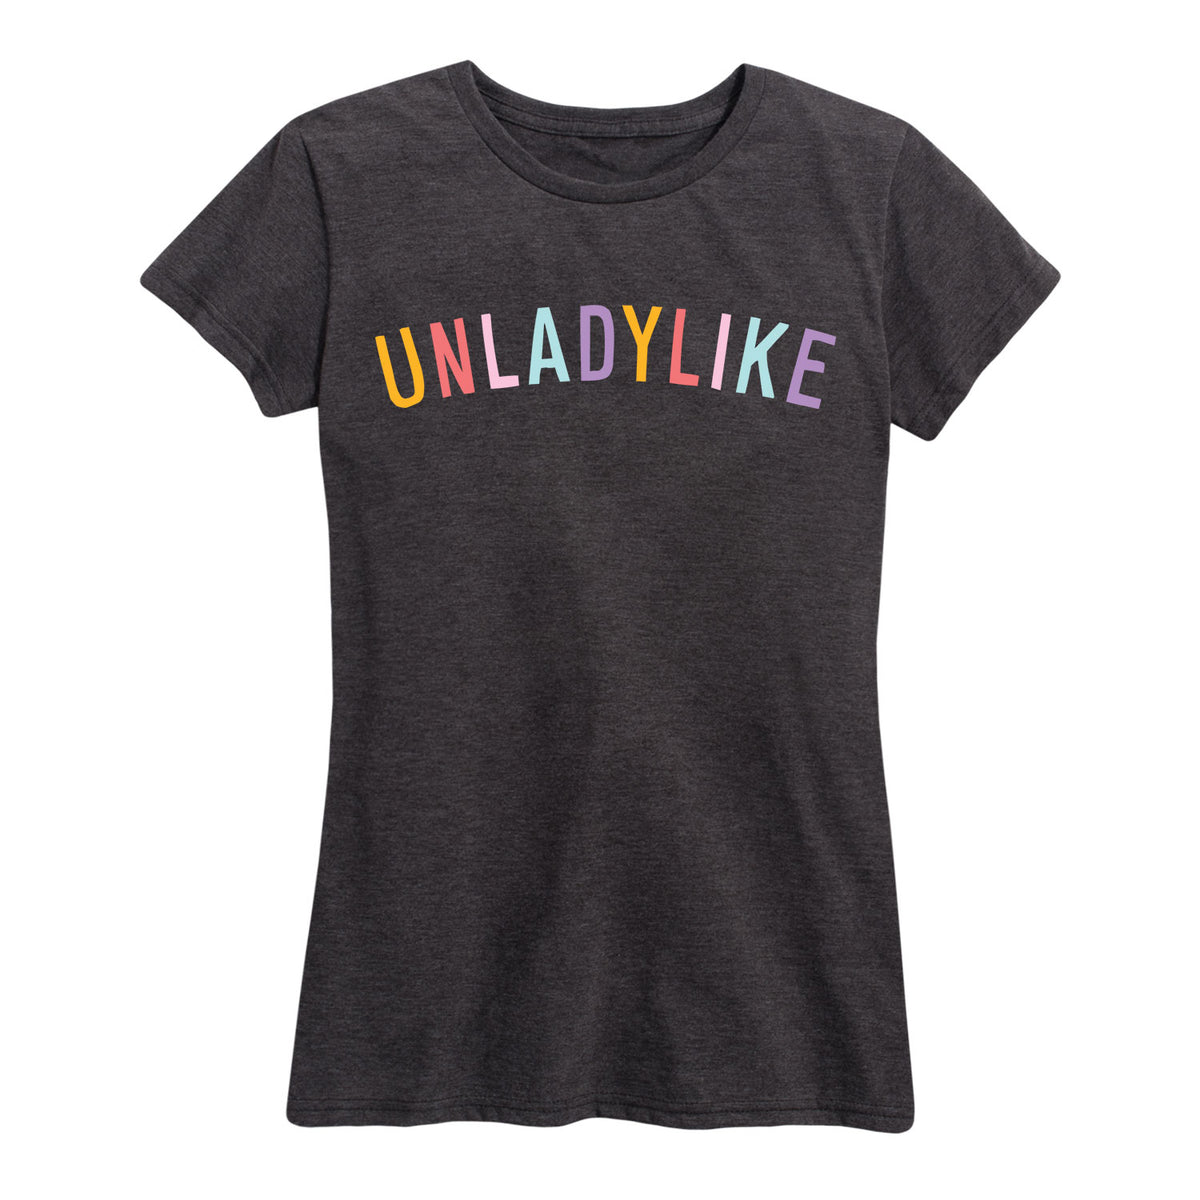 Unladylike - Women's Short Sleeve T-Shirt